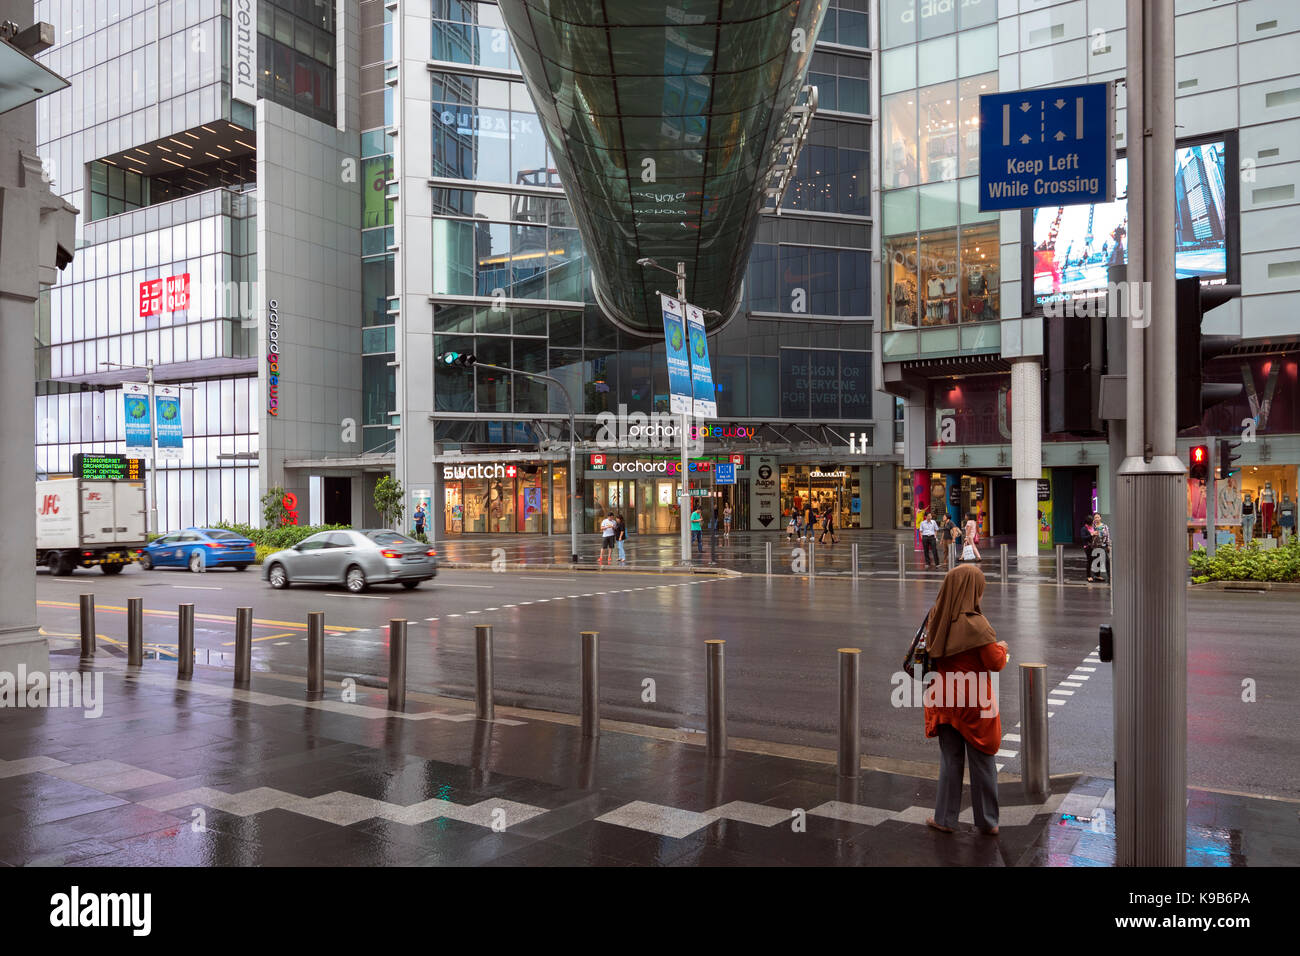 Orchard Road with Orchard-gateway Shopping Mall and glass tubular bridge connecting the 2 part mall on both sides - Stock Image